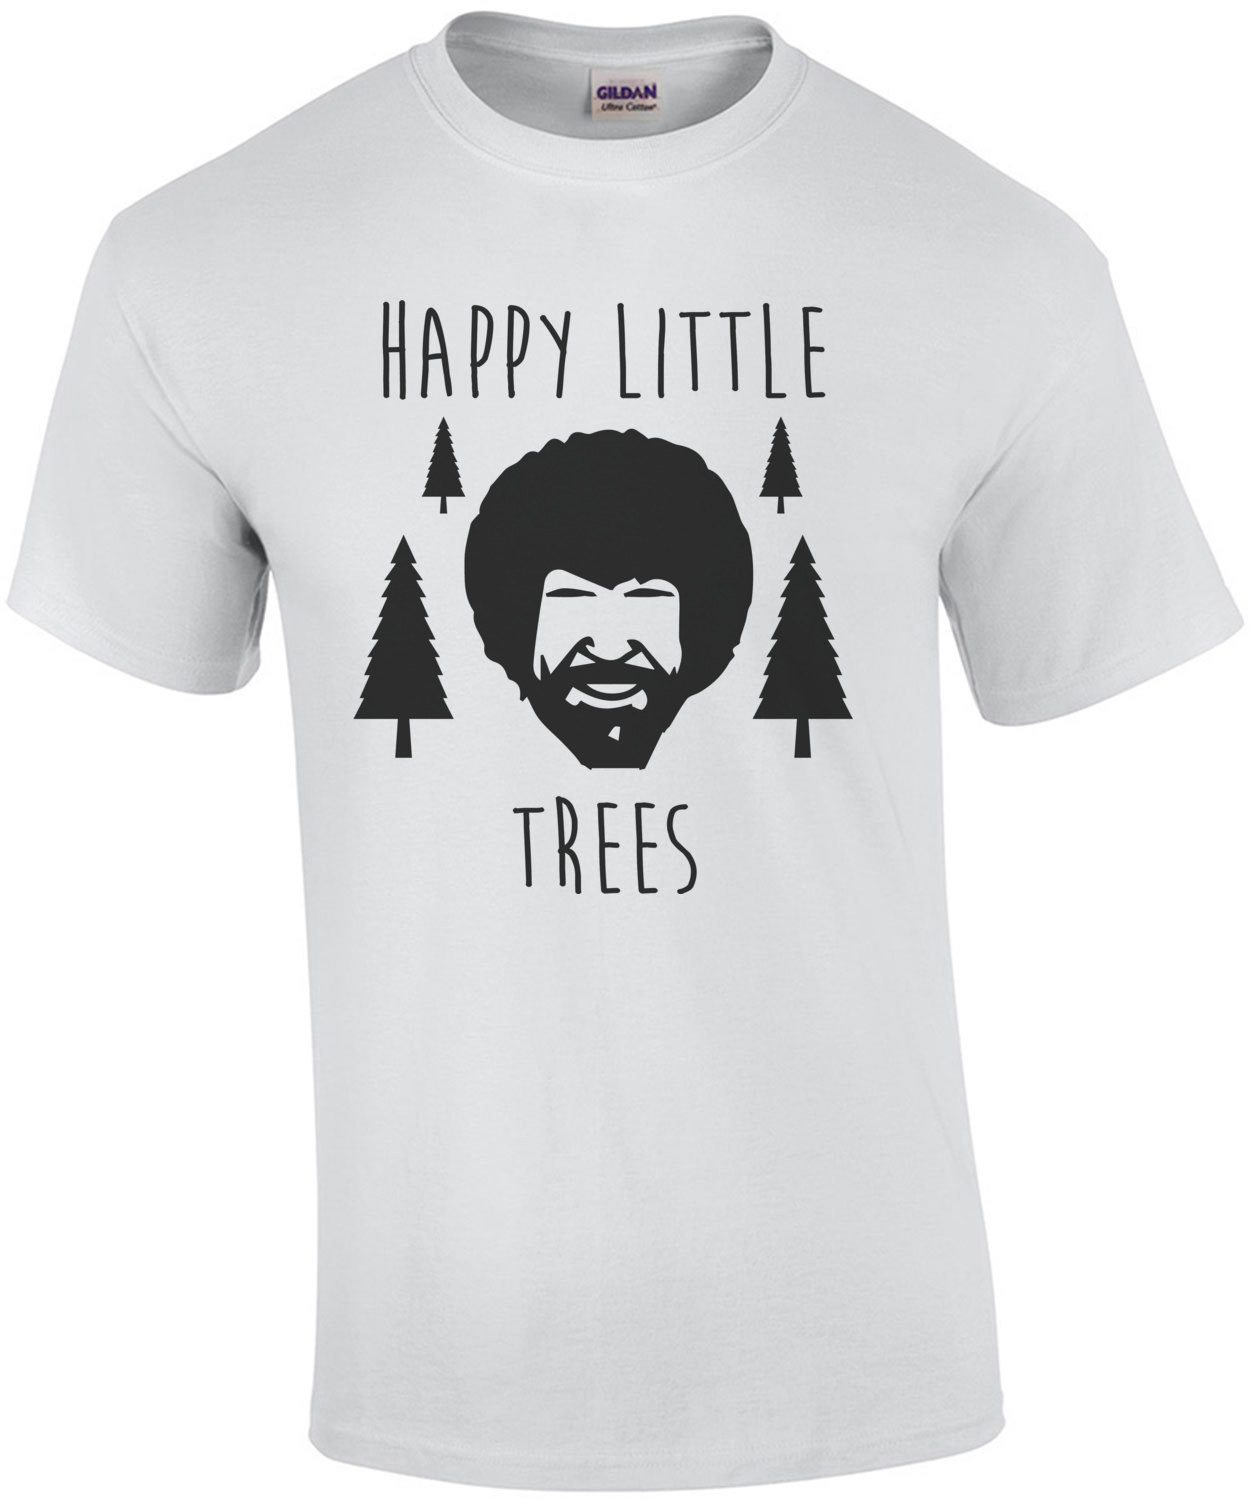 Happy Little Trees - Bob Ross Funny T-Shirt